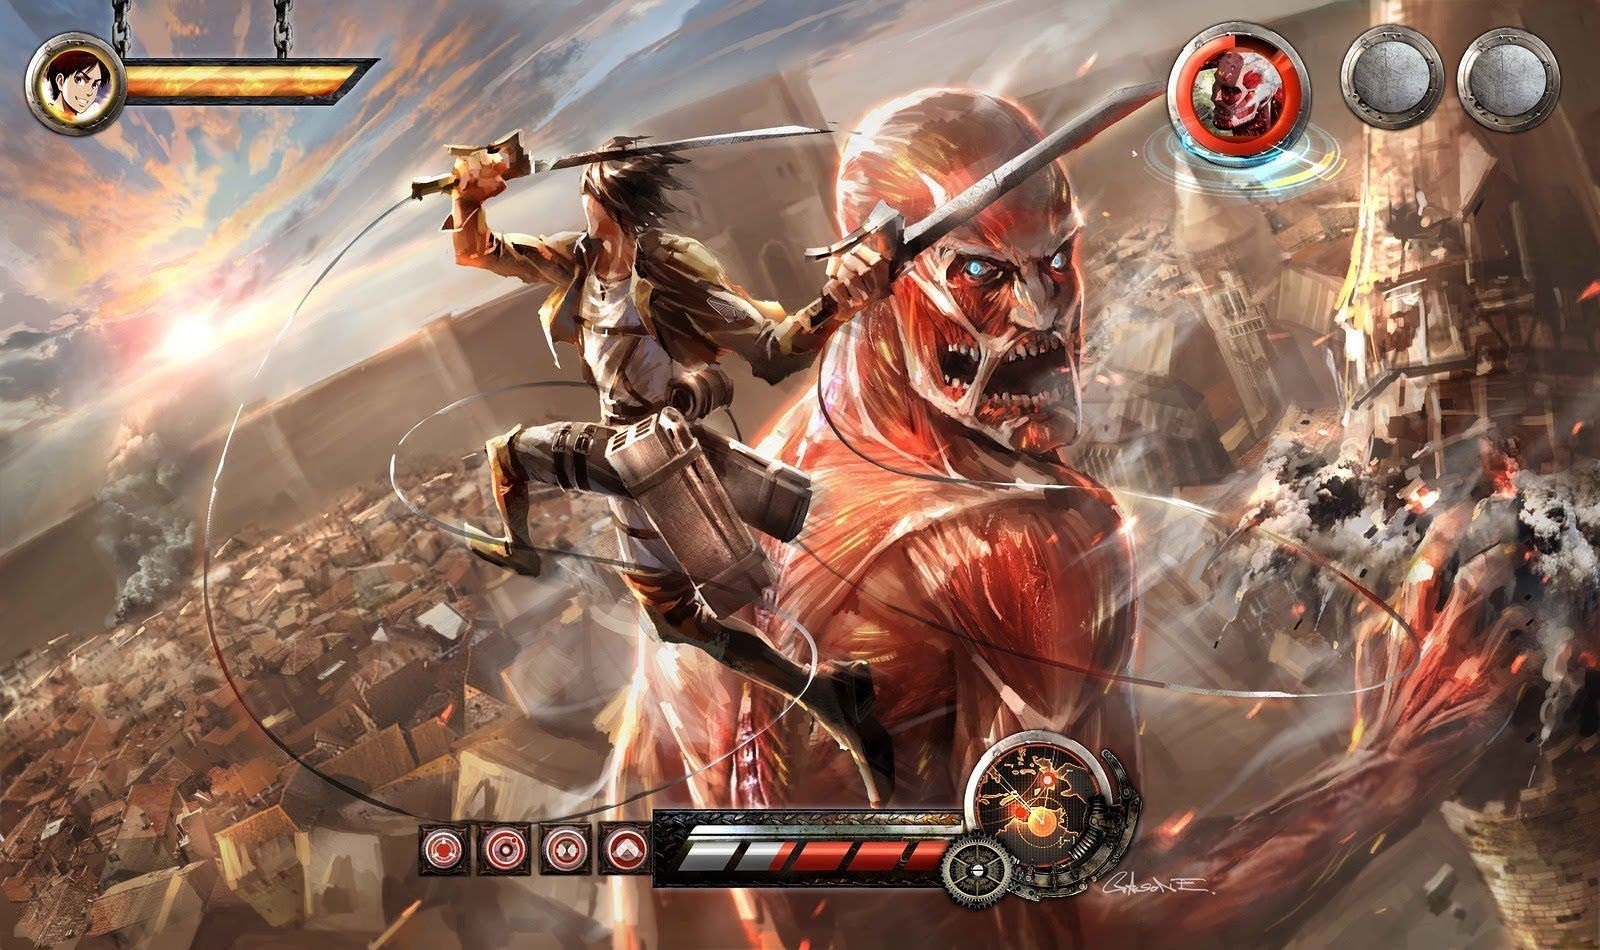 Attack on titan wings of freedom pc game free download gaming ustaad.